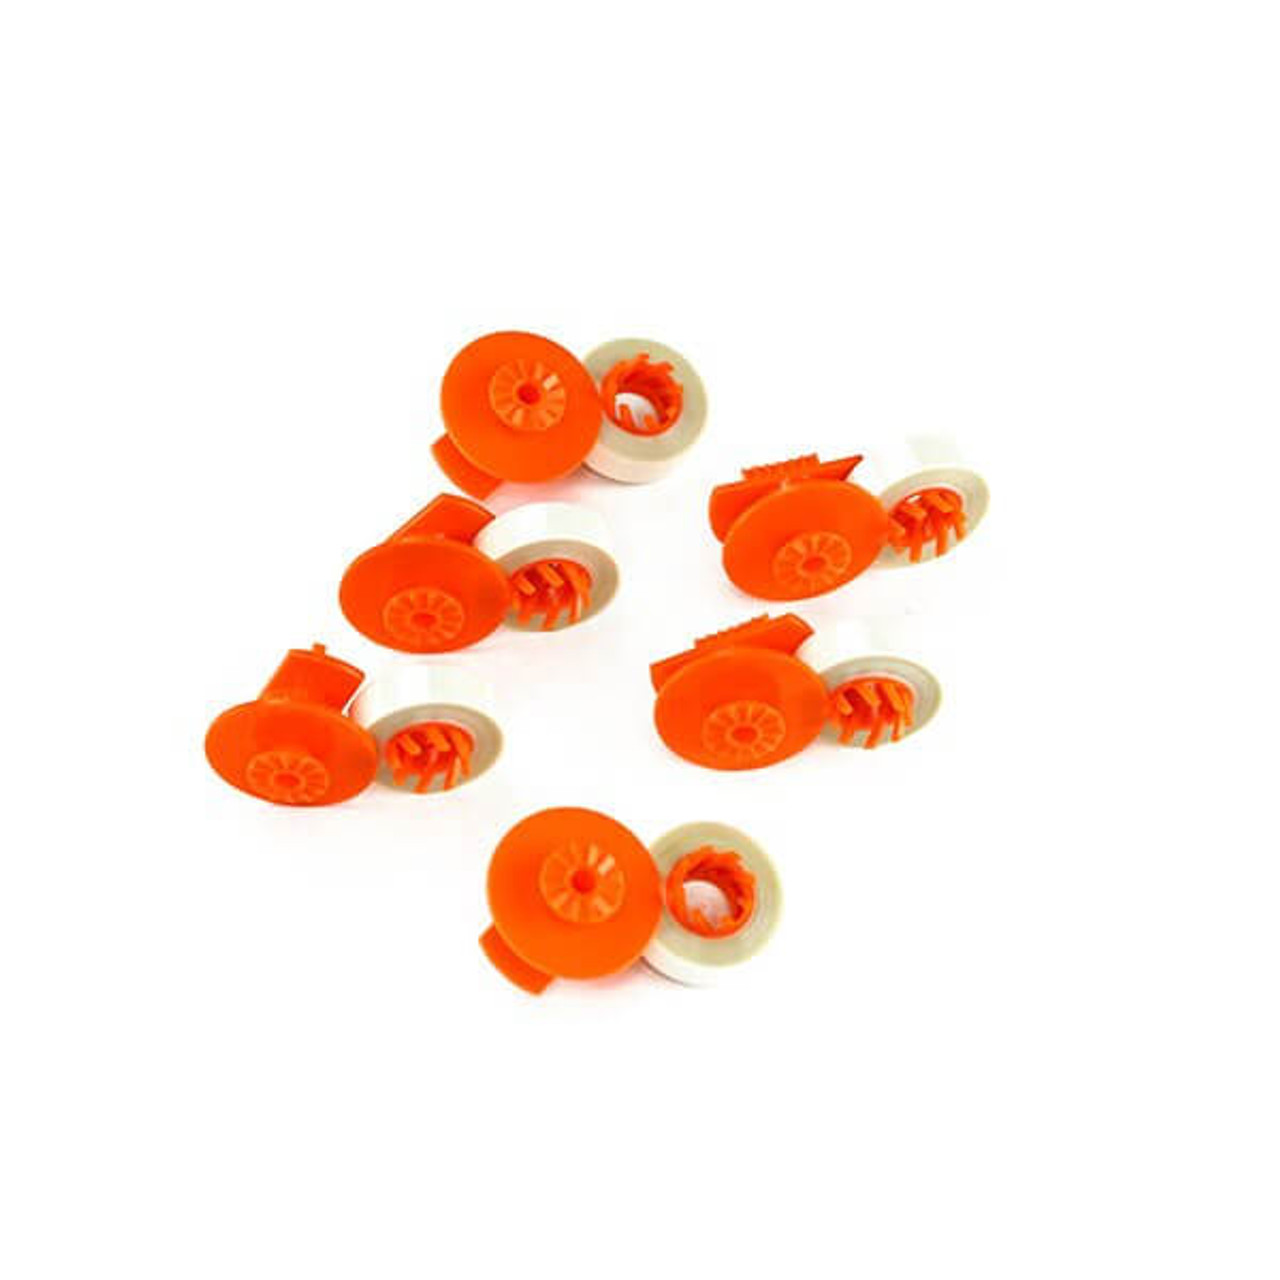 Brother Correctronic 140 Ribbon and Correction Tape Spools